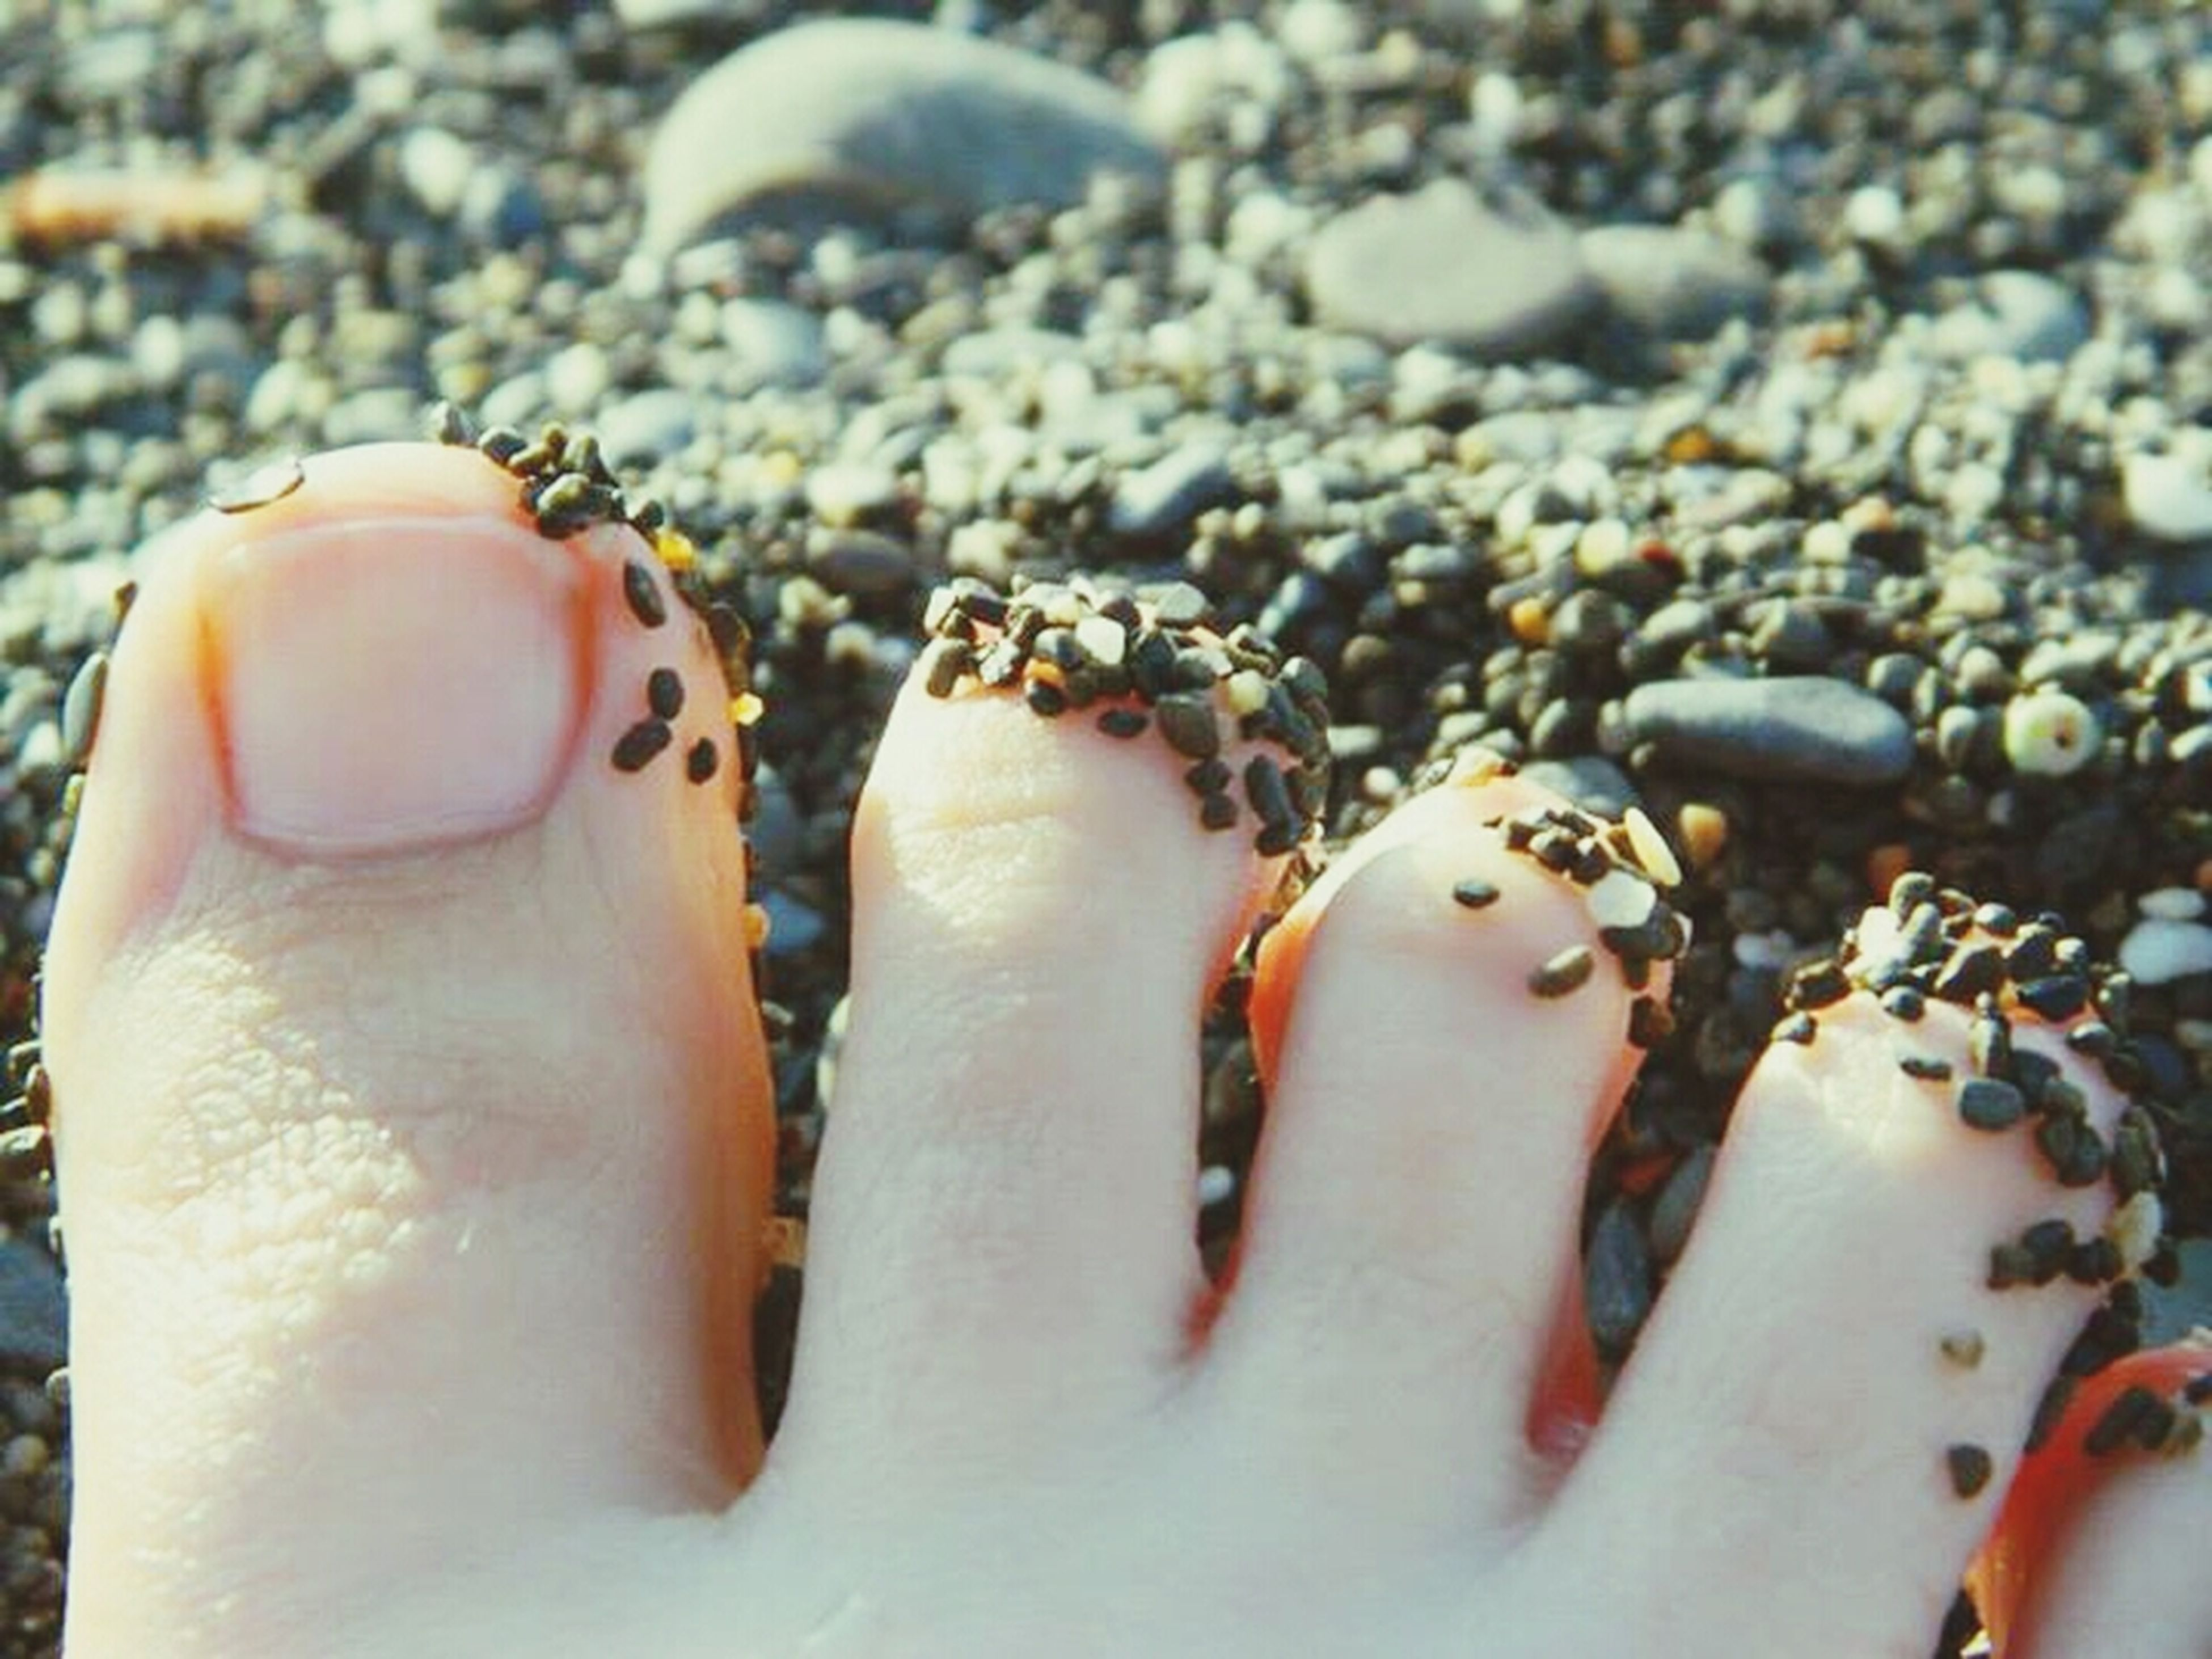 beach, sand, close-up, lifestyles, person, leisure activity, part of, high angle view, seashell, focus on foreground, shore, day, water, outdoors, pebble, sea